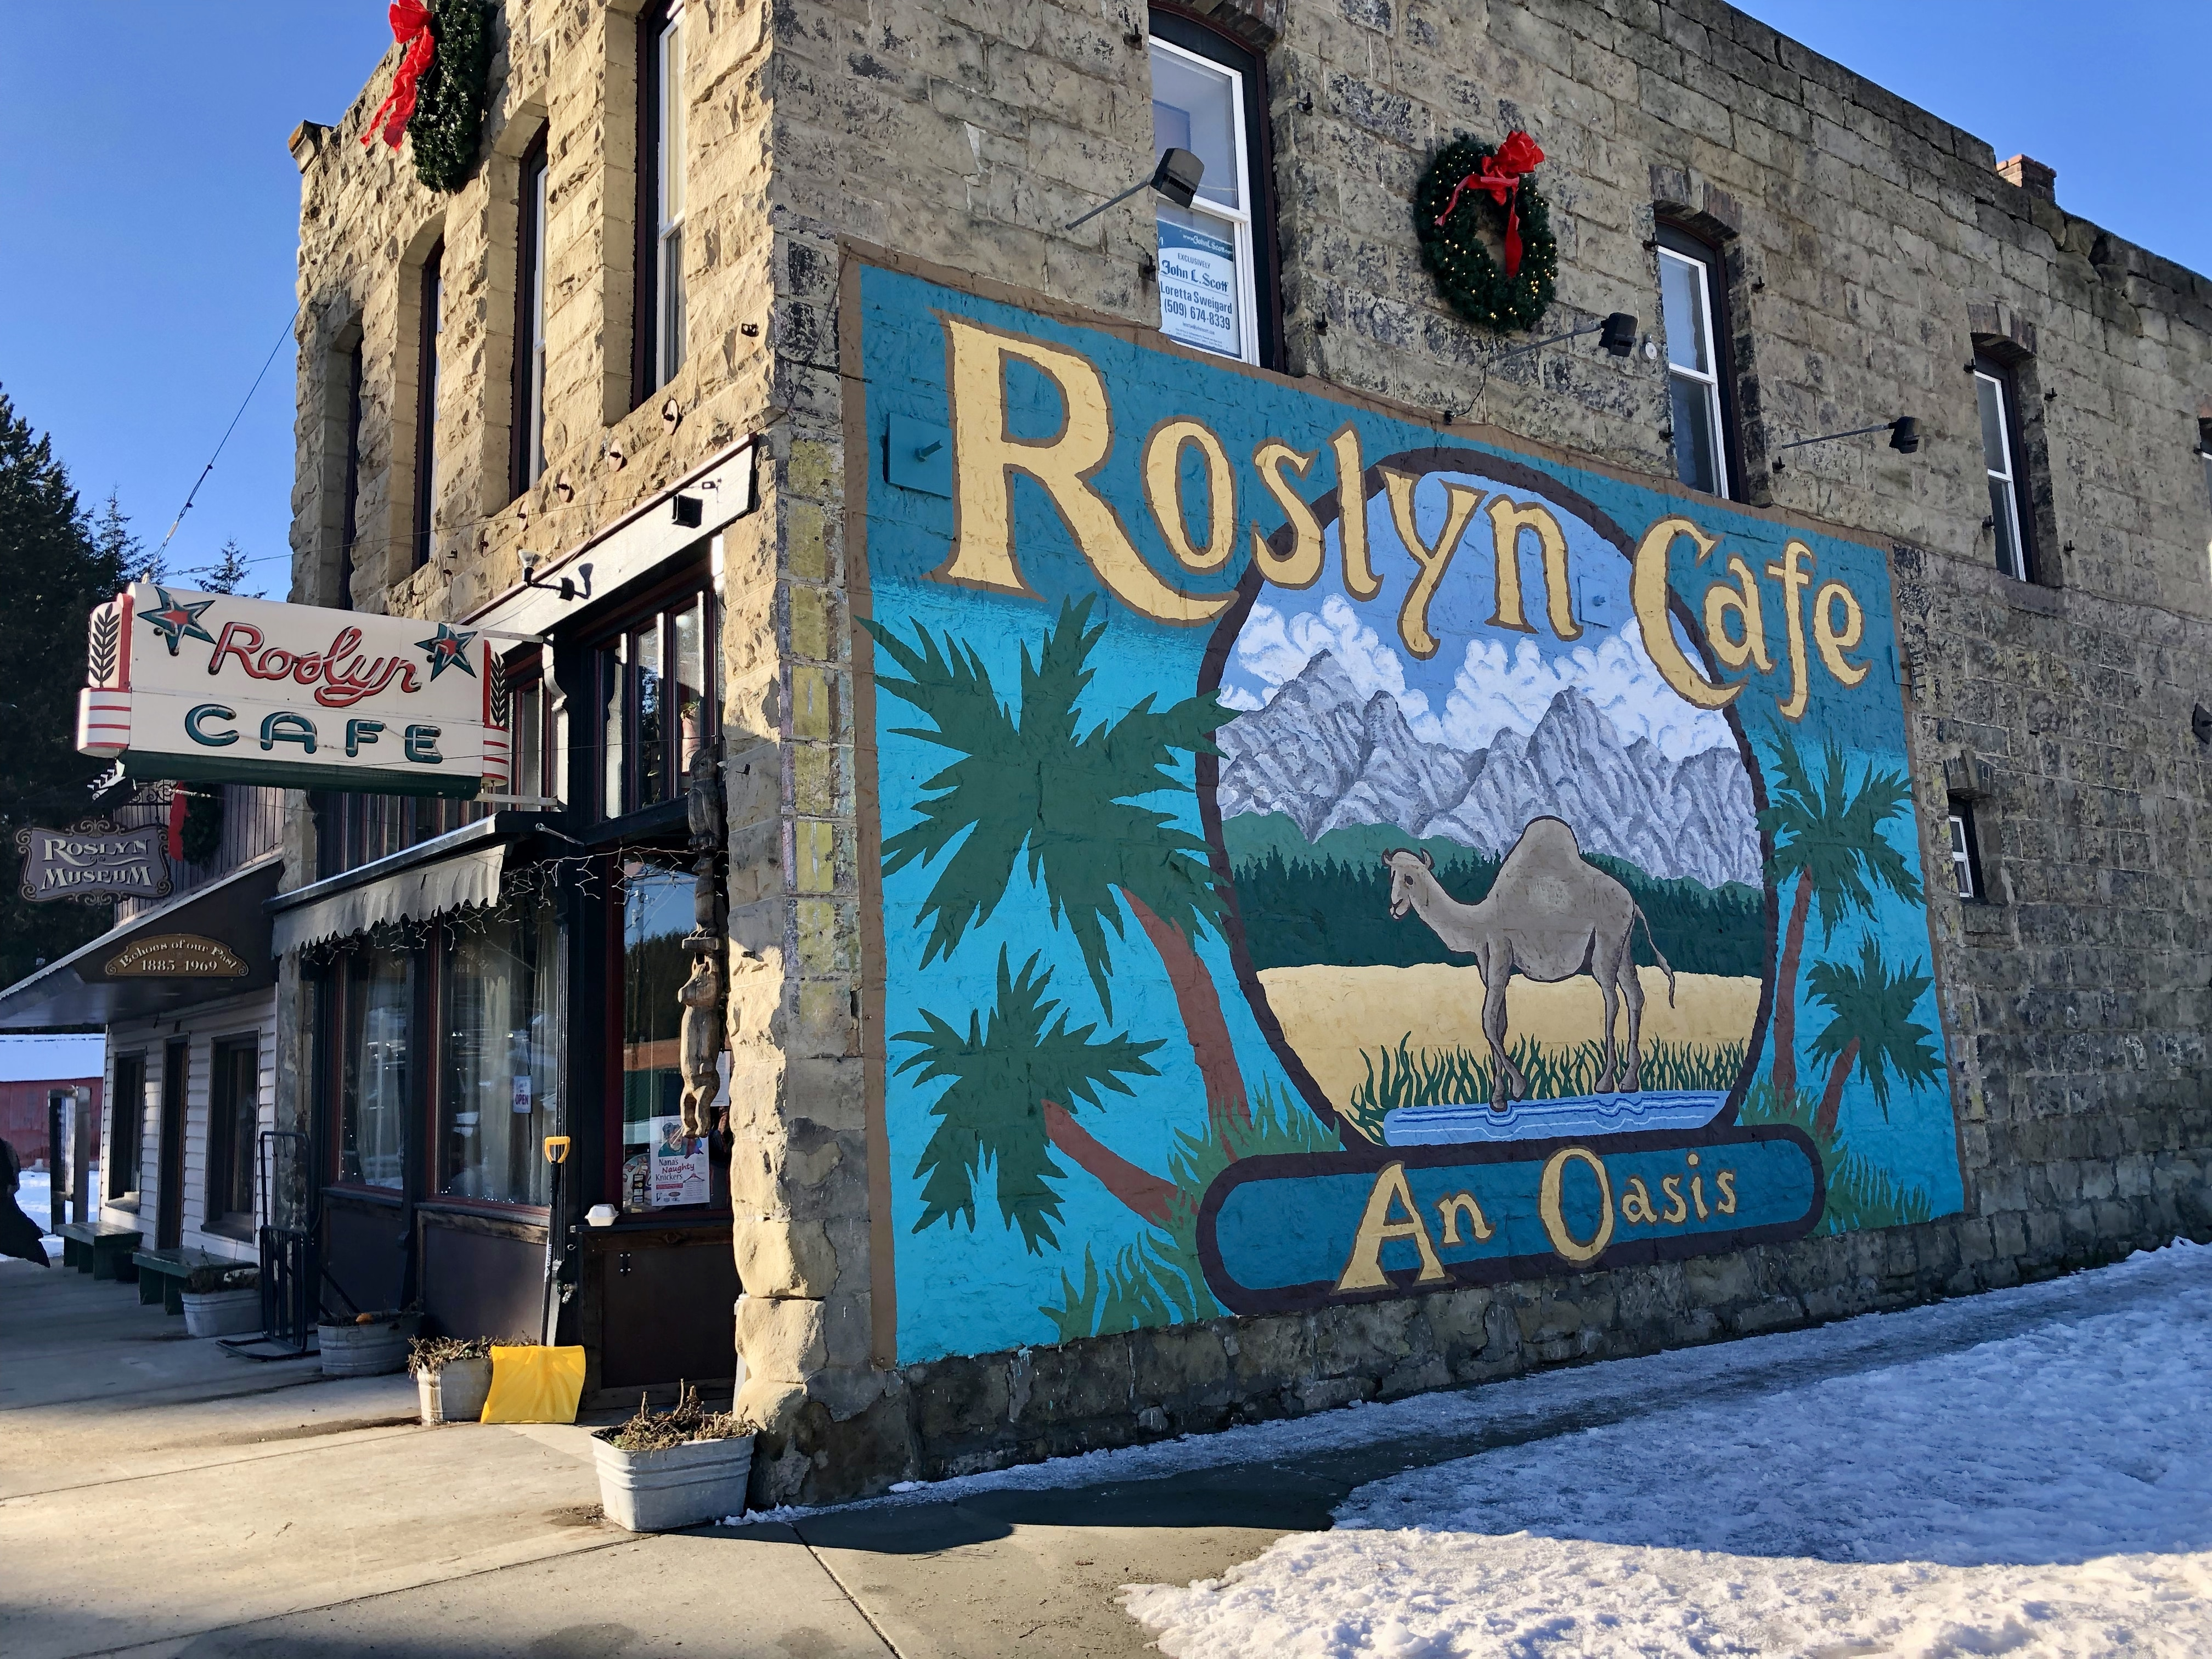 Roslyn Cafe Street View